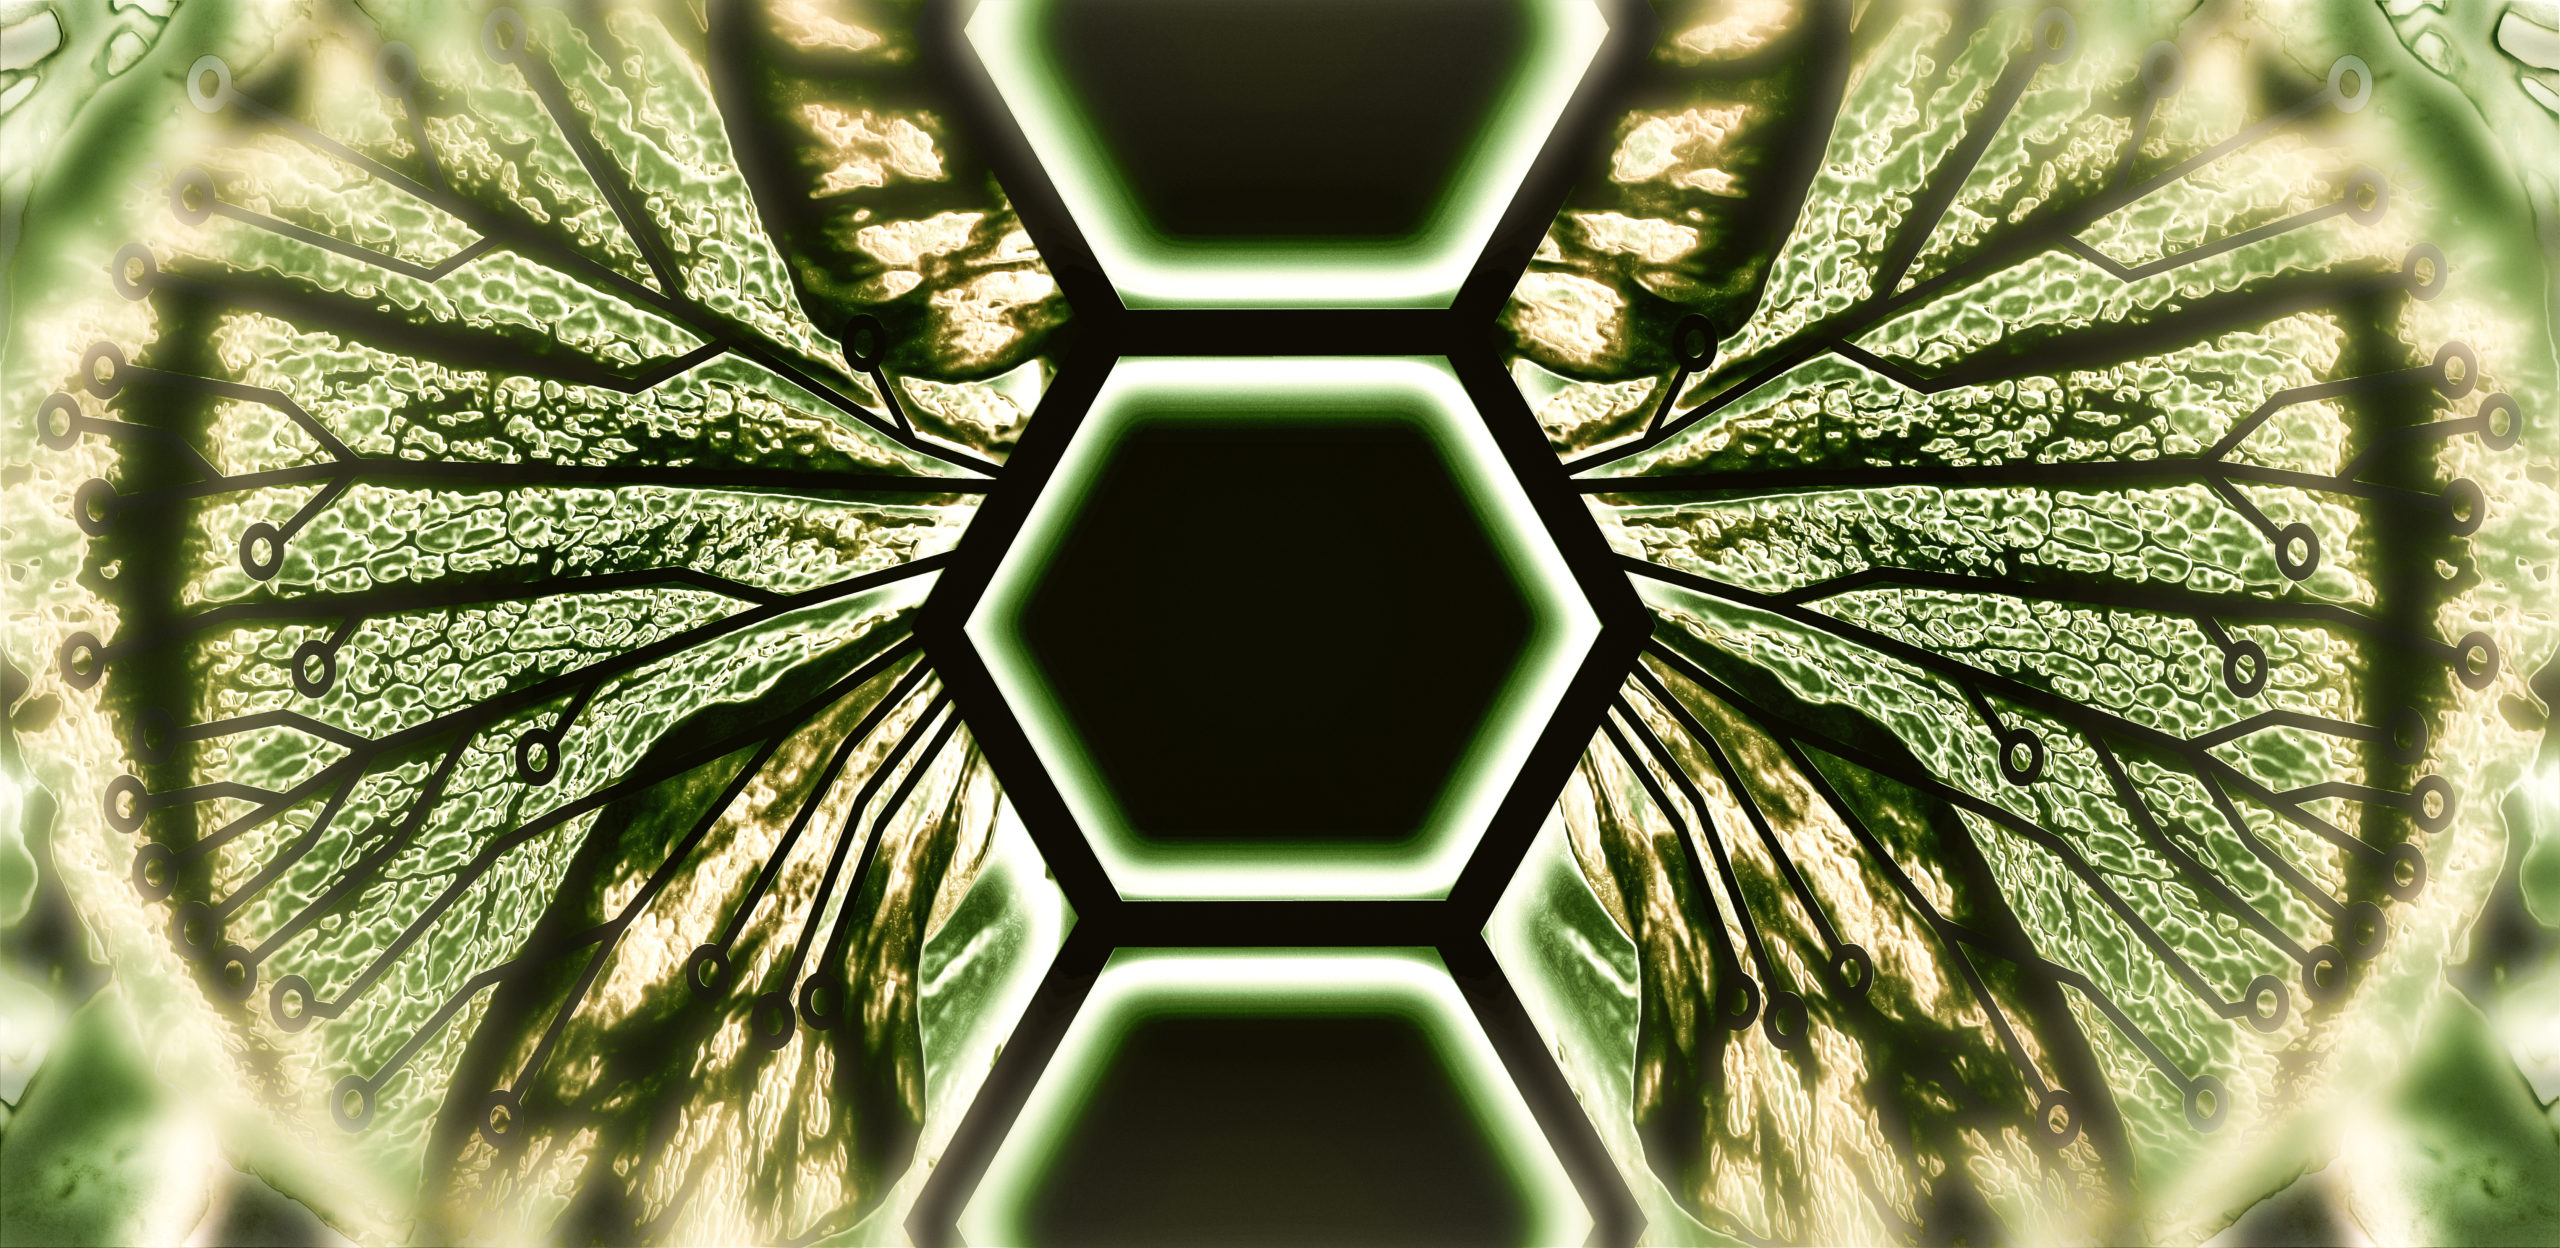 Hybrid Biotechnology - Biomimicry - Abstract Illustration